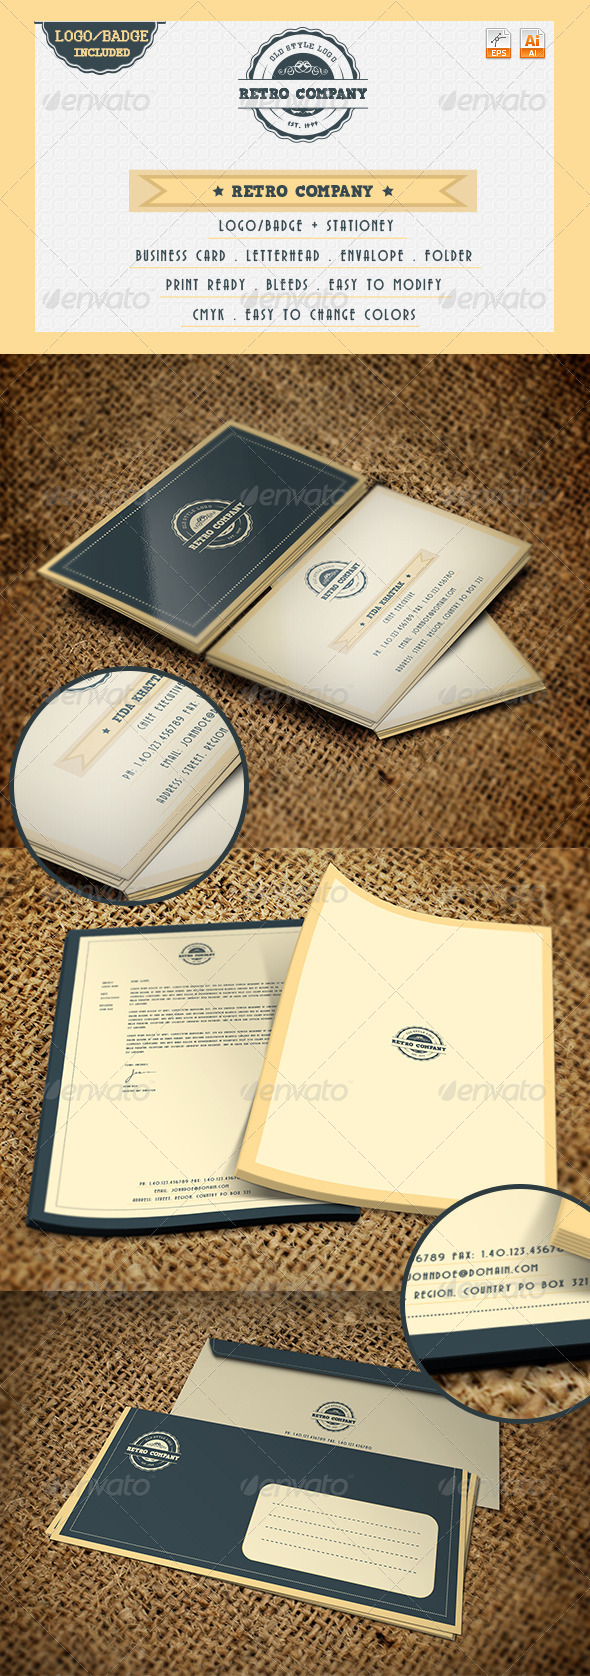 Retro Company - Logo and Stationery - Stationery Print Templates